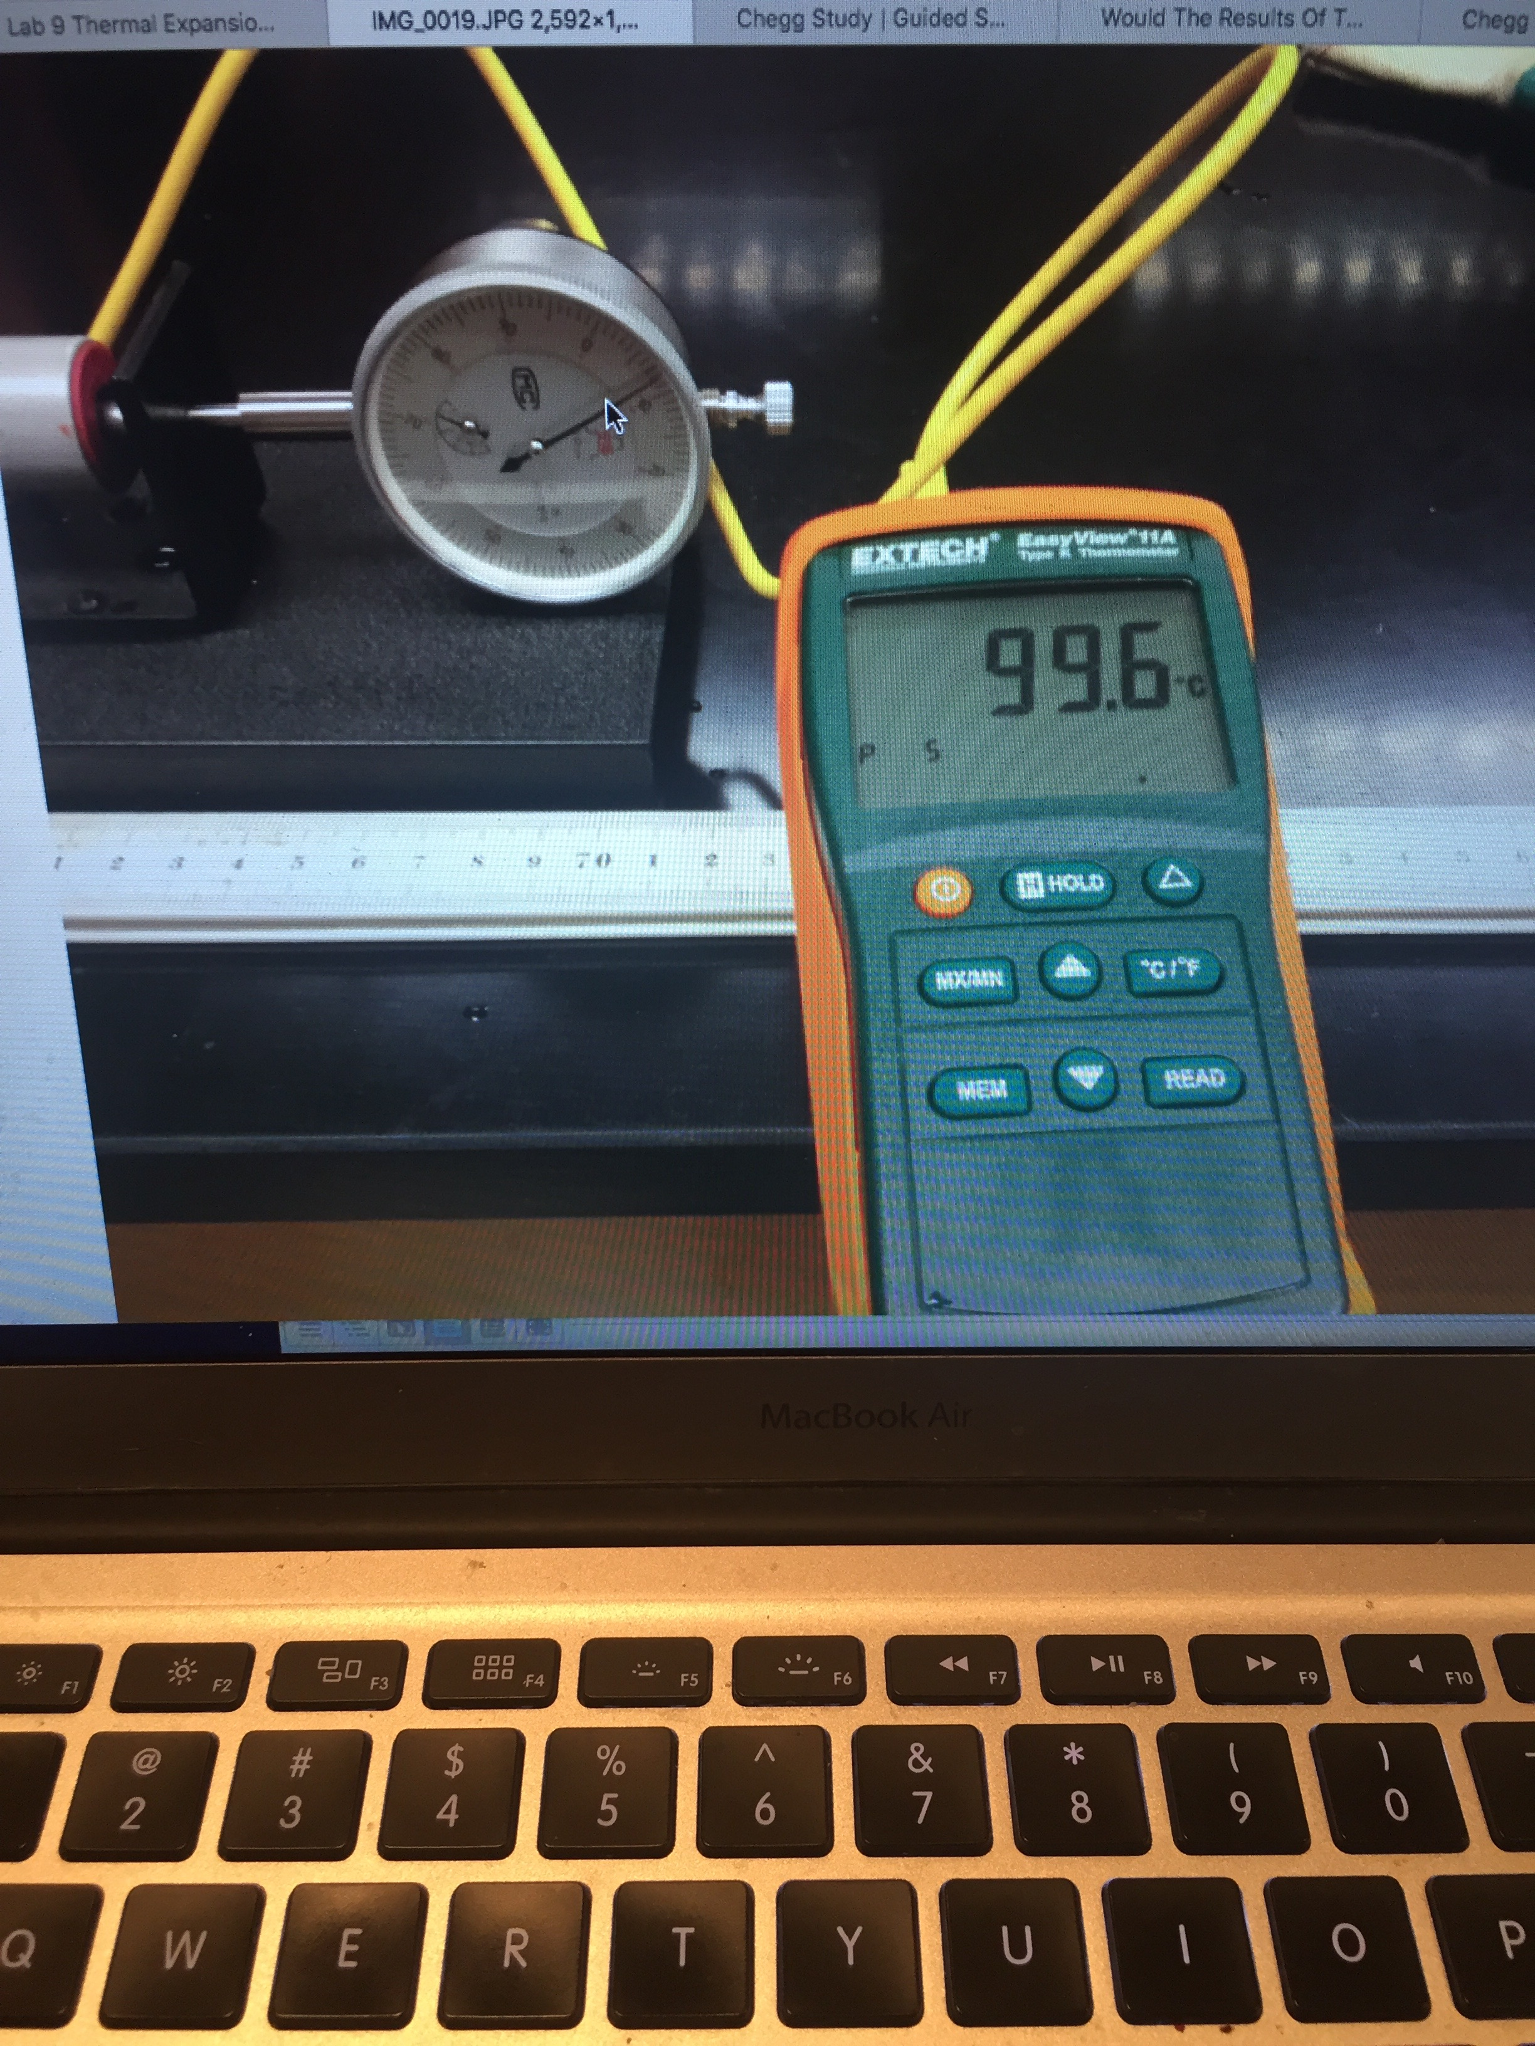 Solved: If The Length Of Each Bar And The Micrometer Readi